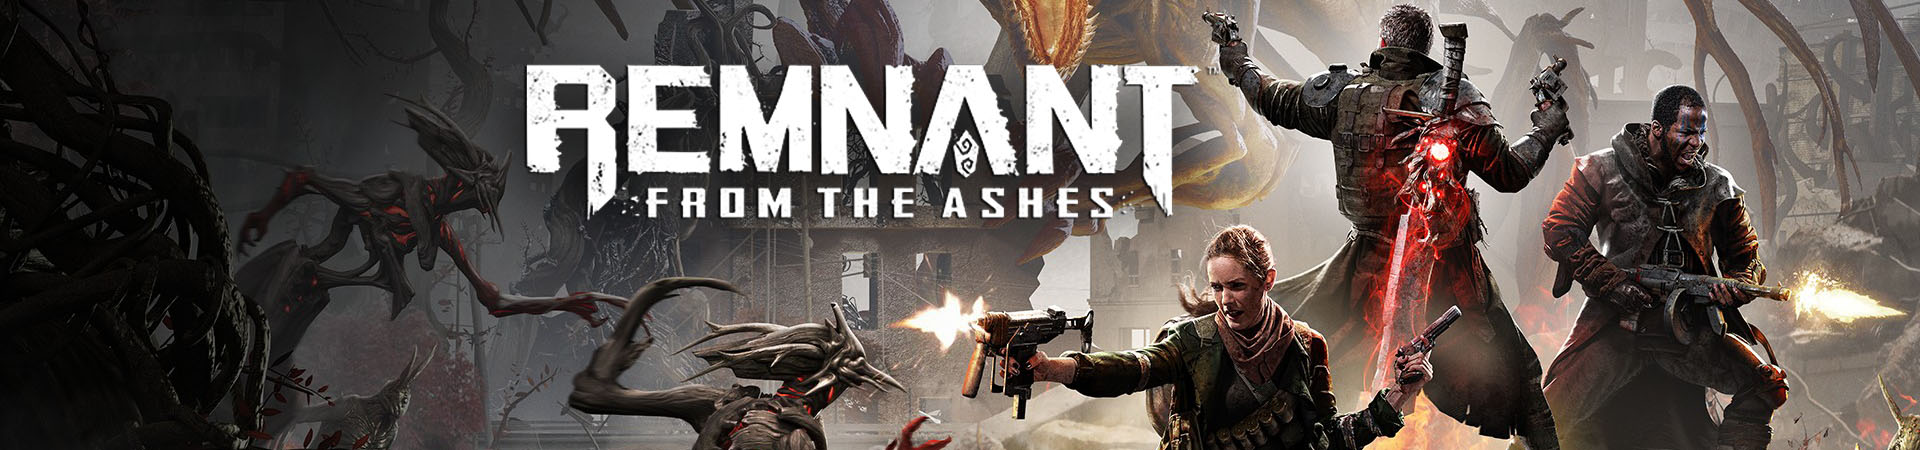 remnant-from-the-ashes-banner